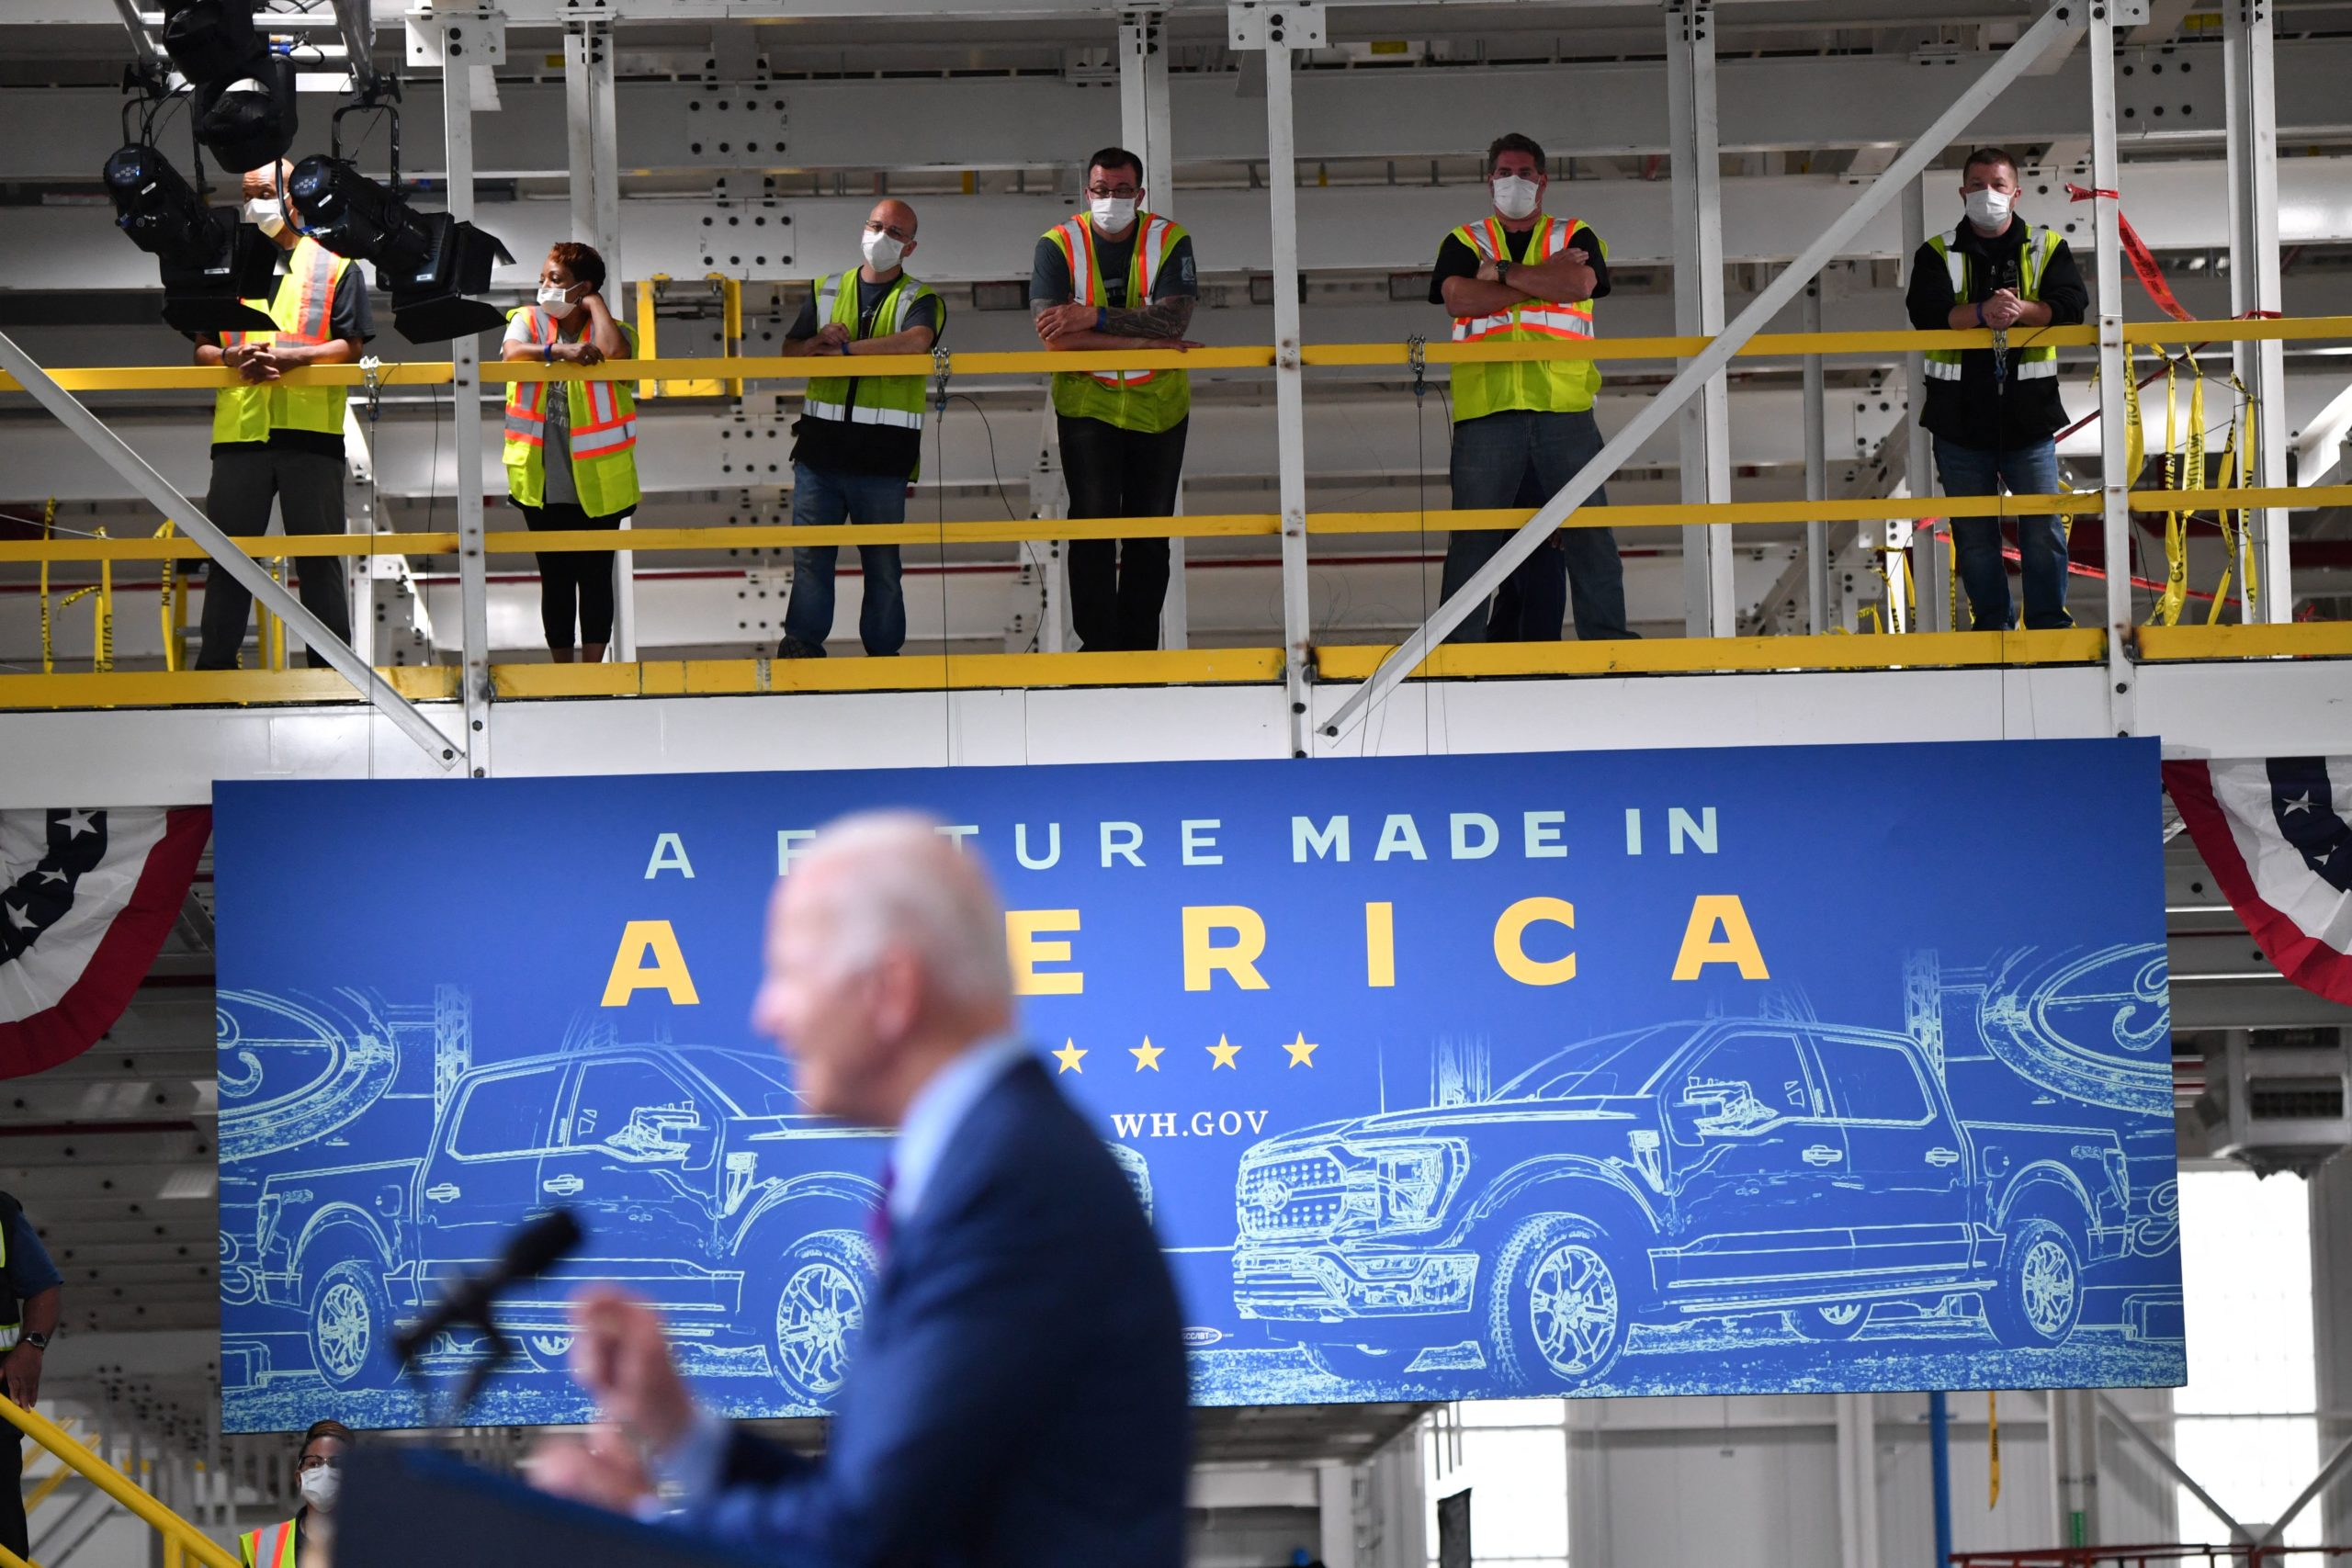 Workers listen to President Joe Biden speak about infrastructure at a Ford facility in Dearborn, Michigan on Tuesday. (Nicholas Kamm/AFP via Getty Images)